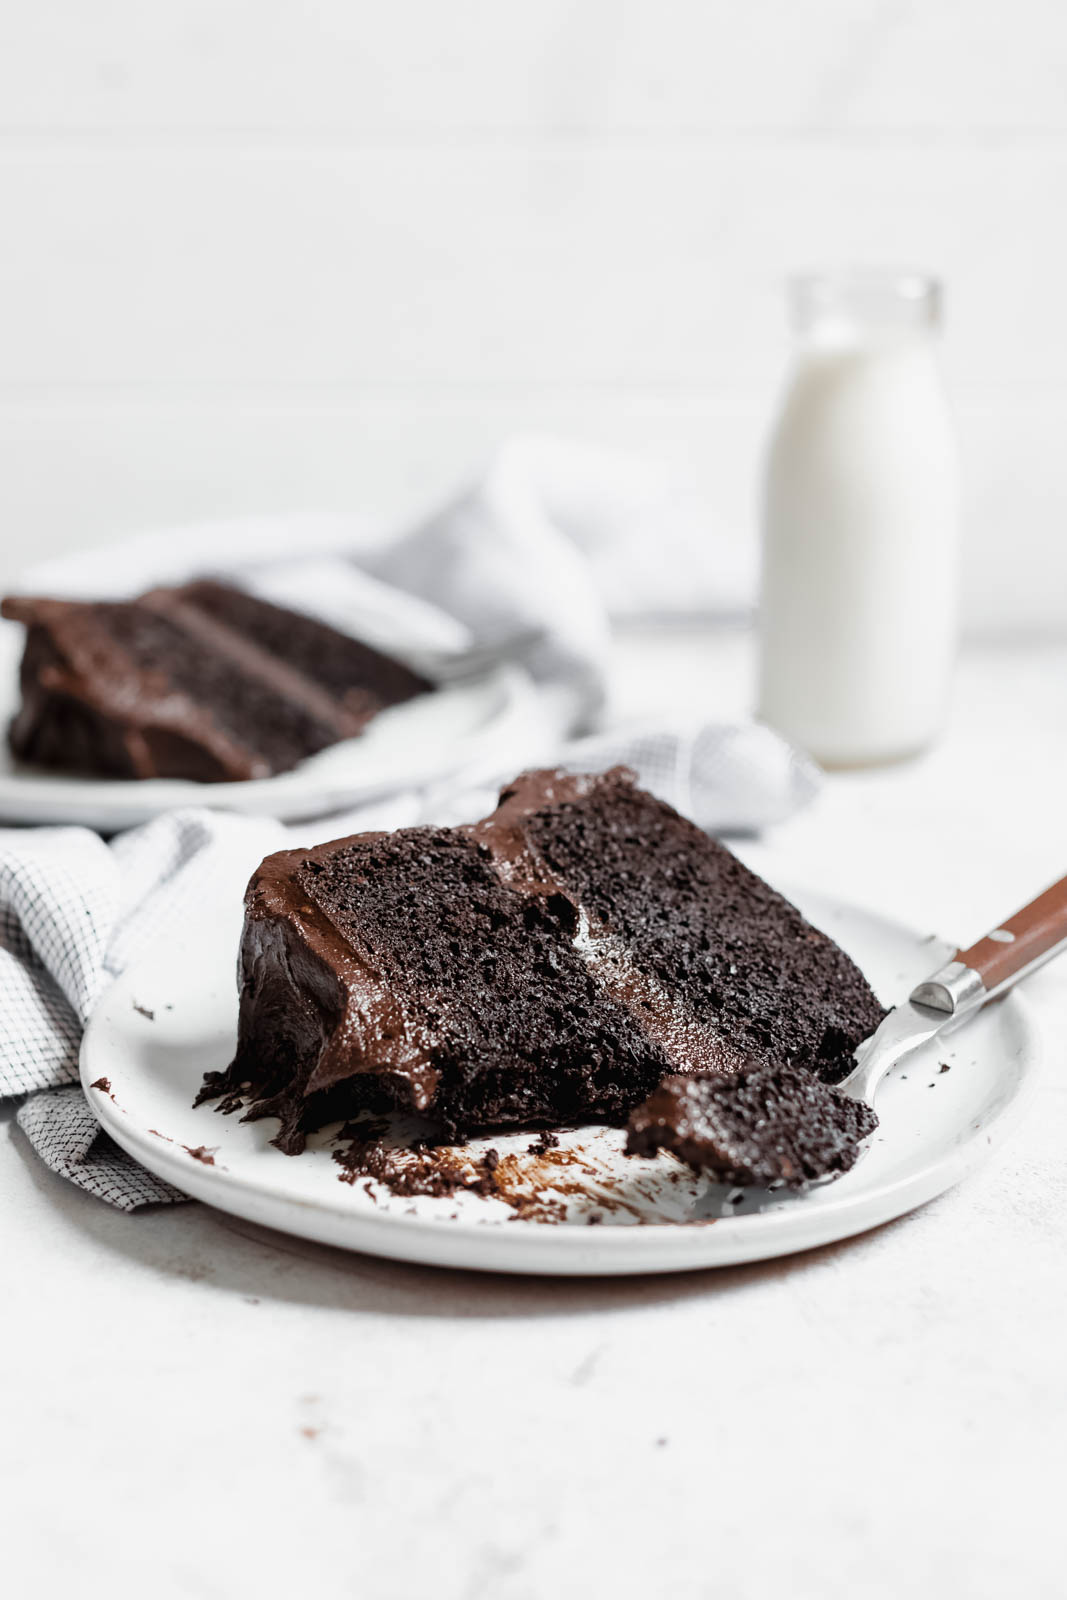 Blackout chocolate cake on plate